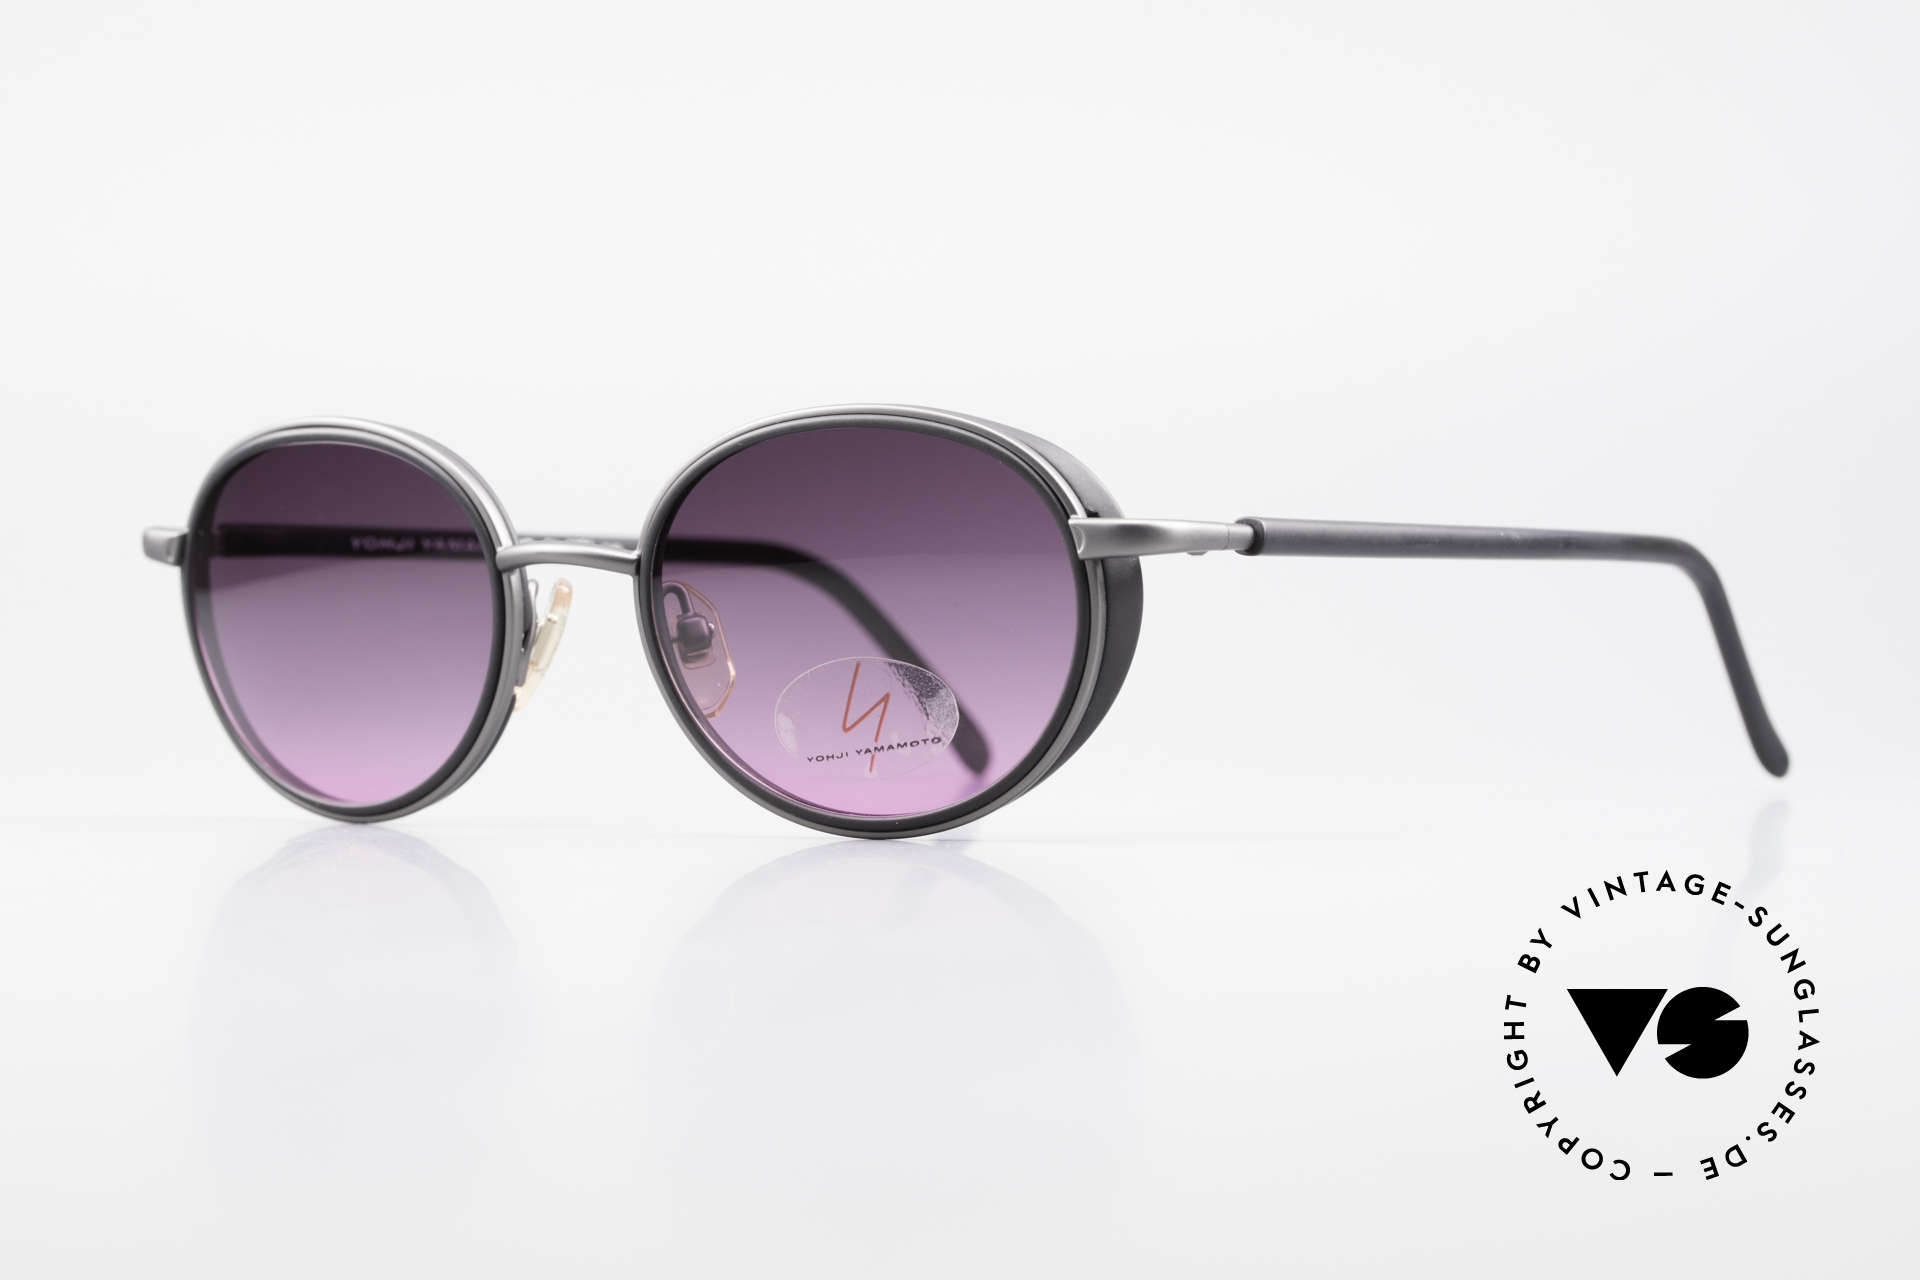 Yohji Yamamoto 51-6201 Side Shields Sunglasses 90's, with small side blinds and gray-pink gradient sun lenses, Made for Women